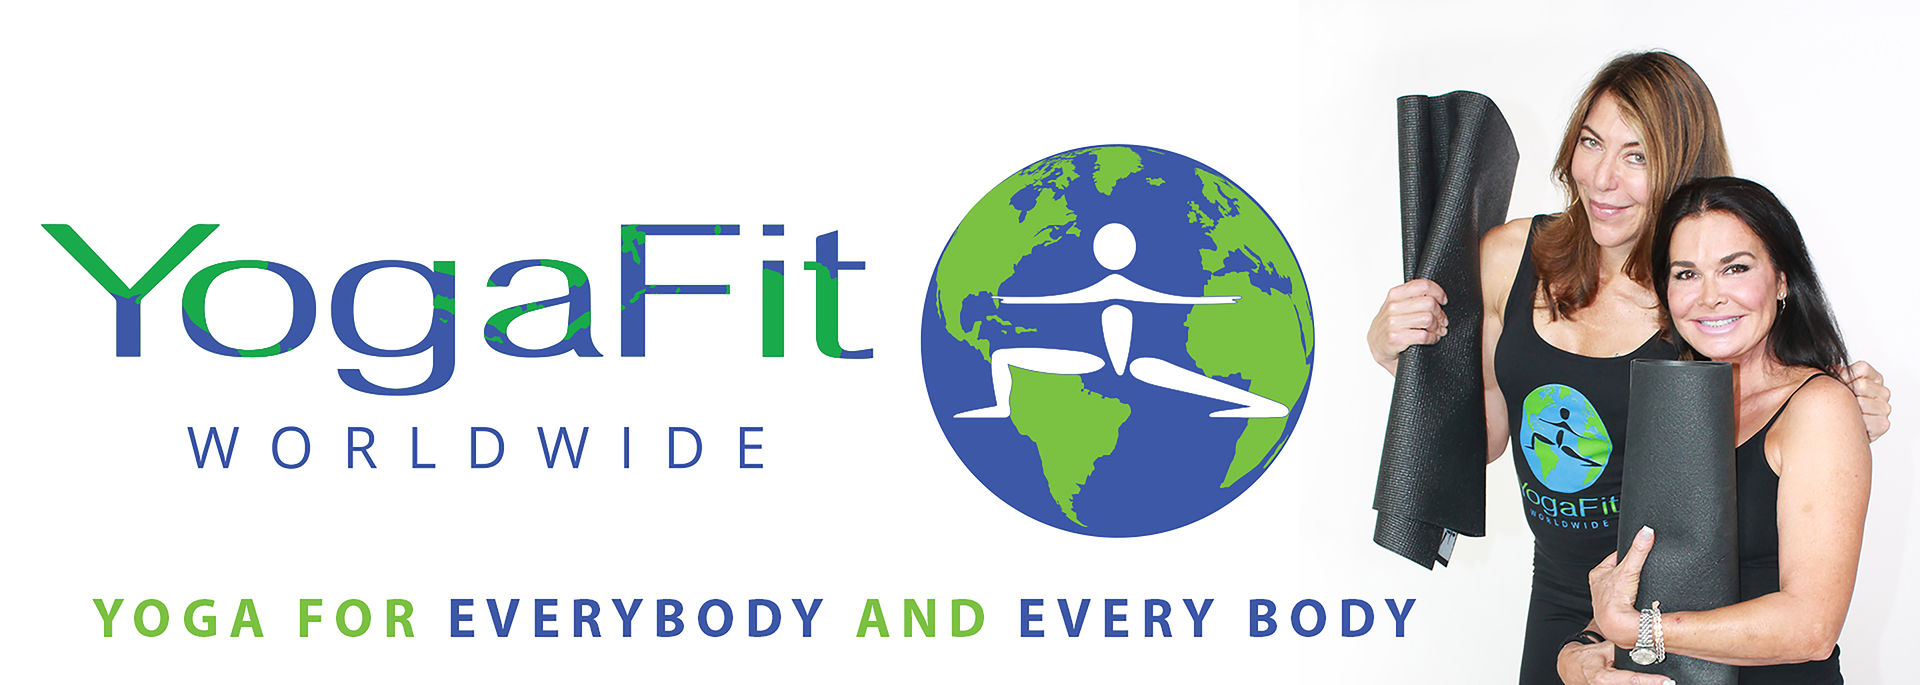 Yoga Fit channel